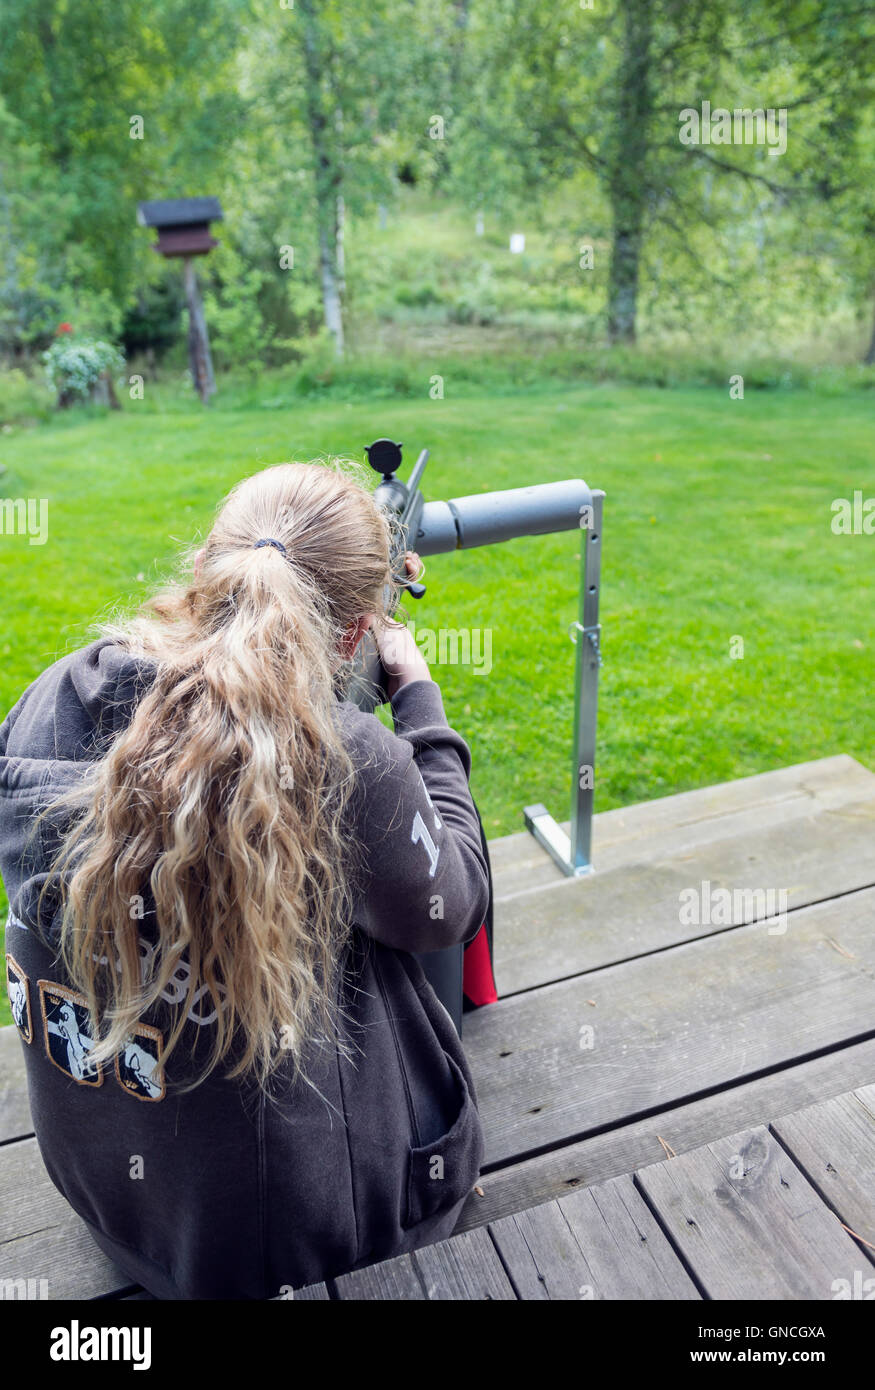 Girl aiming with rifle - Stock Image